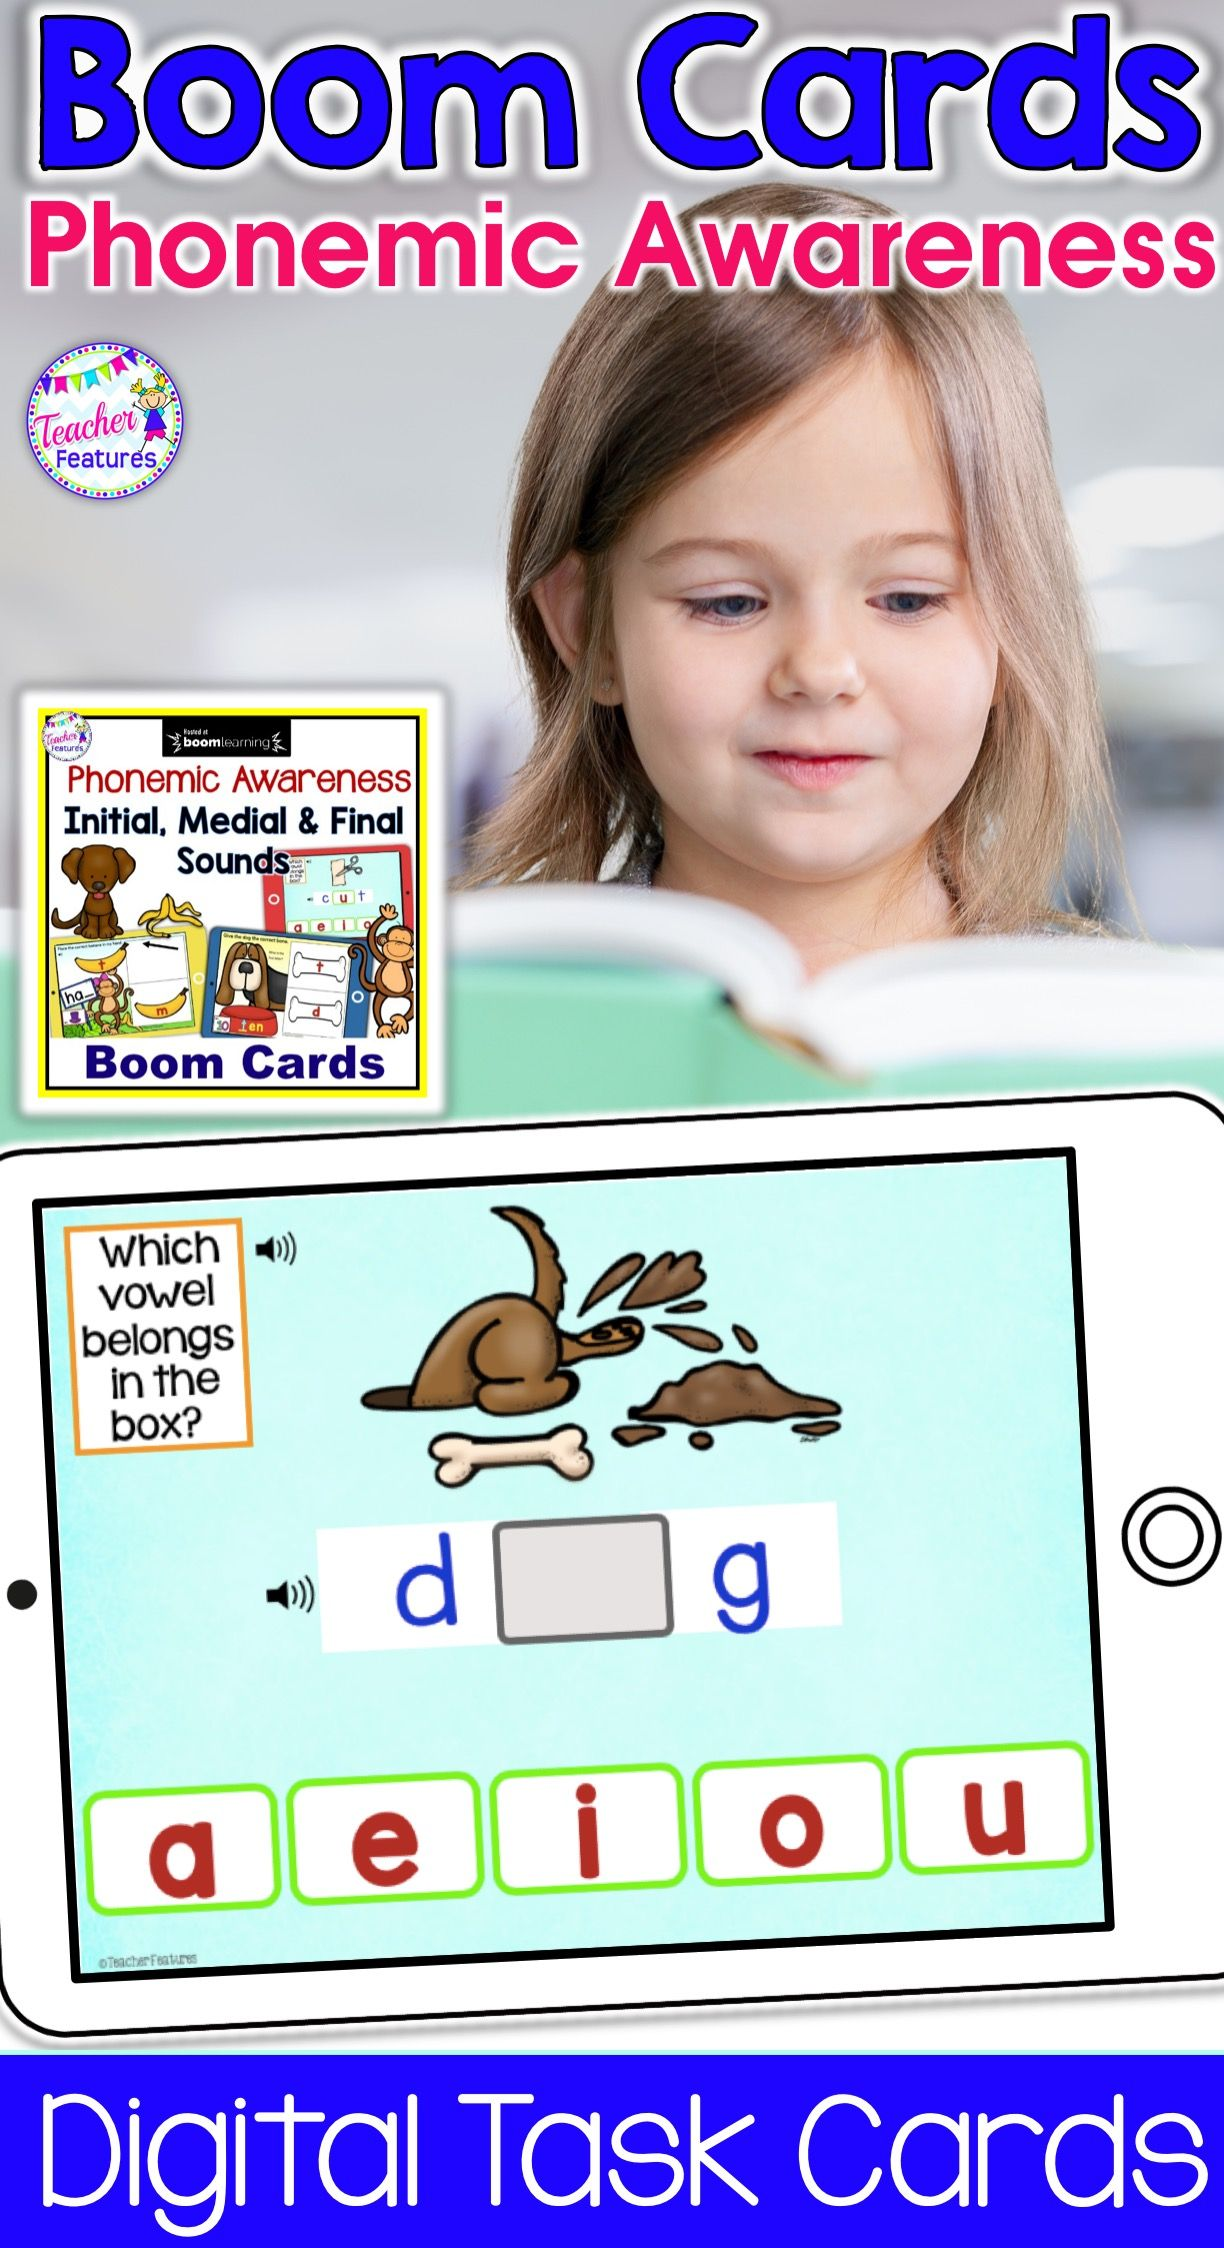 Boom Cards Phonological Awareness Cvc Words Initial